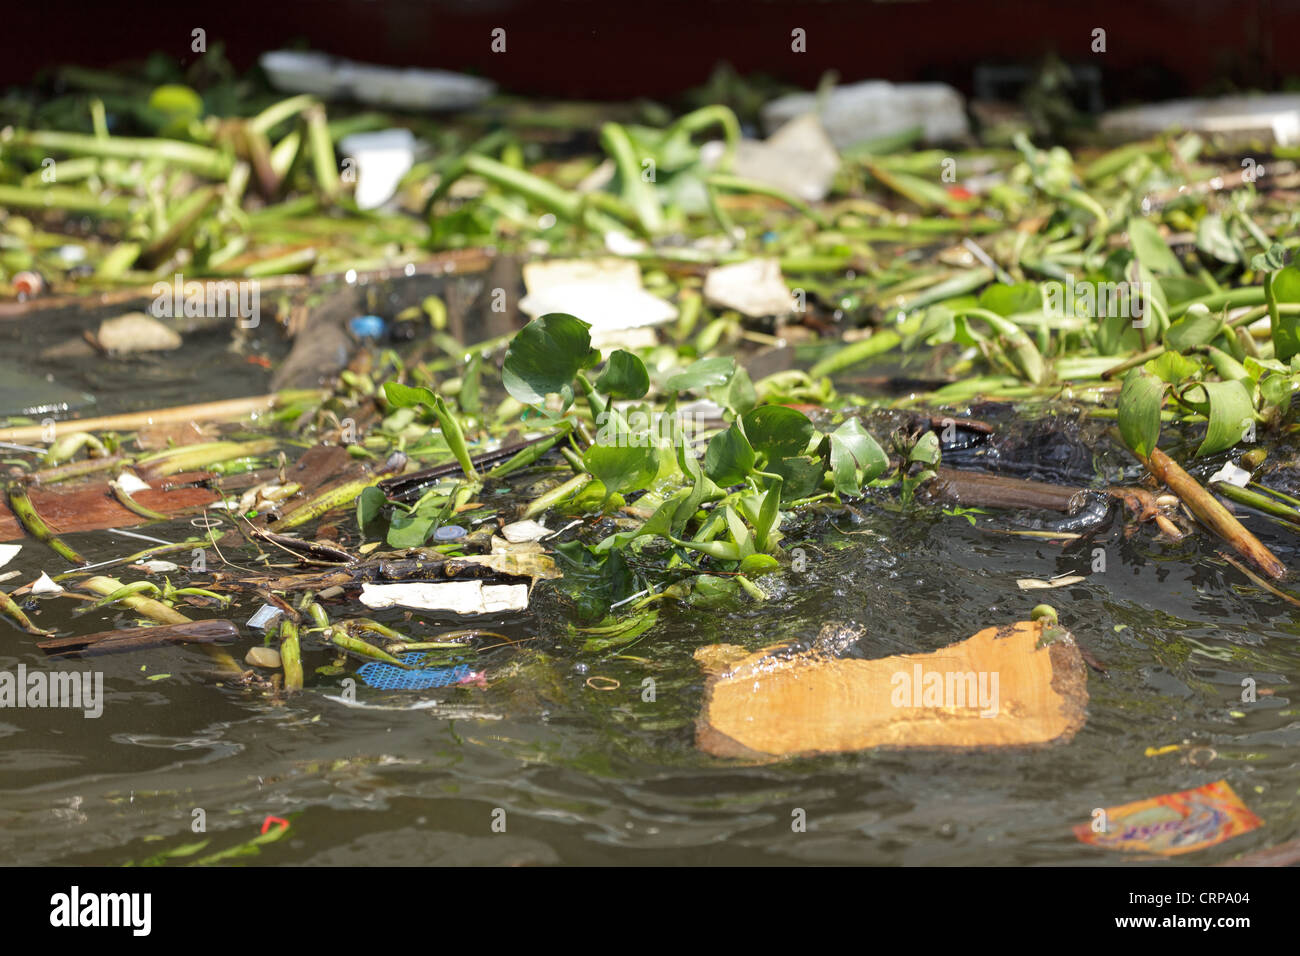 Floating trash pollution in water river, Bangkok, Thailand - Stock Image